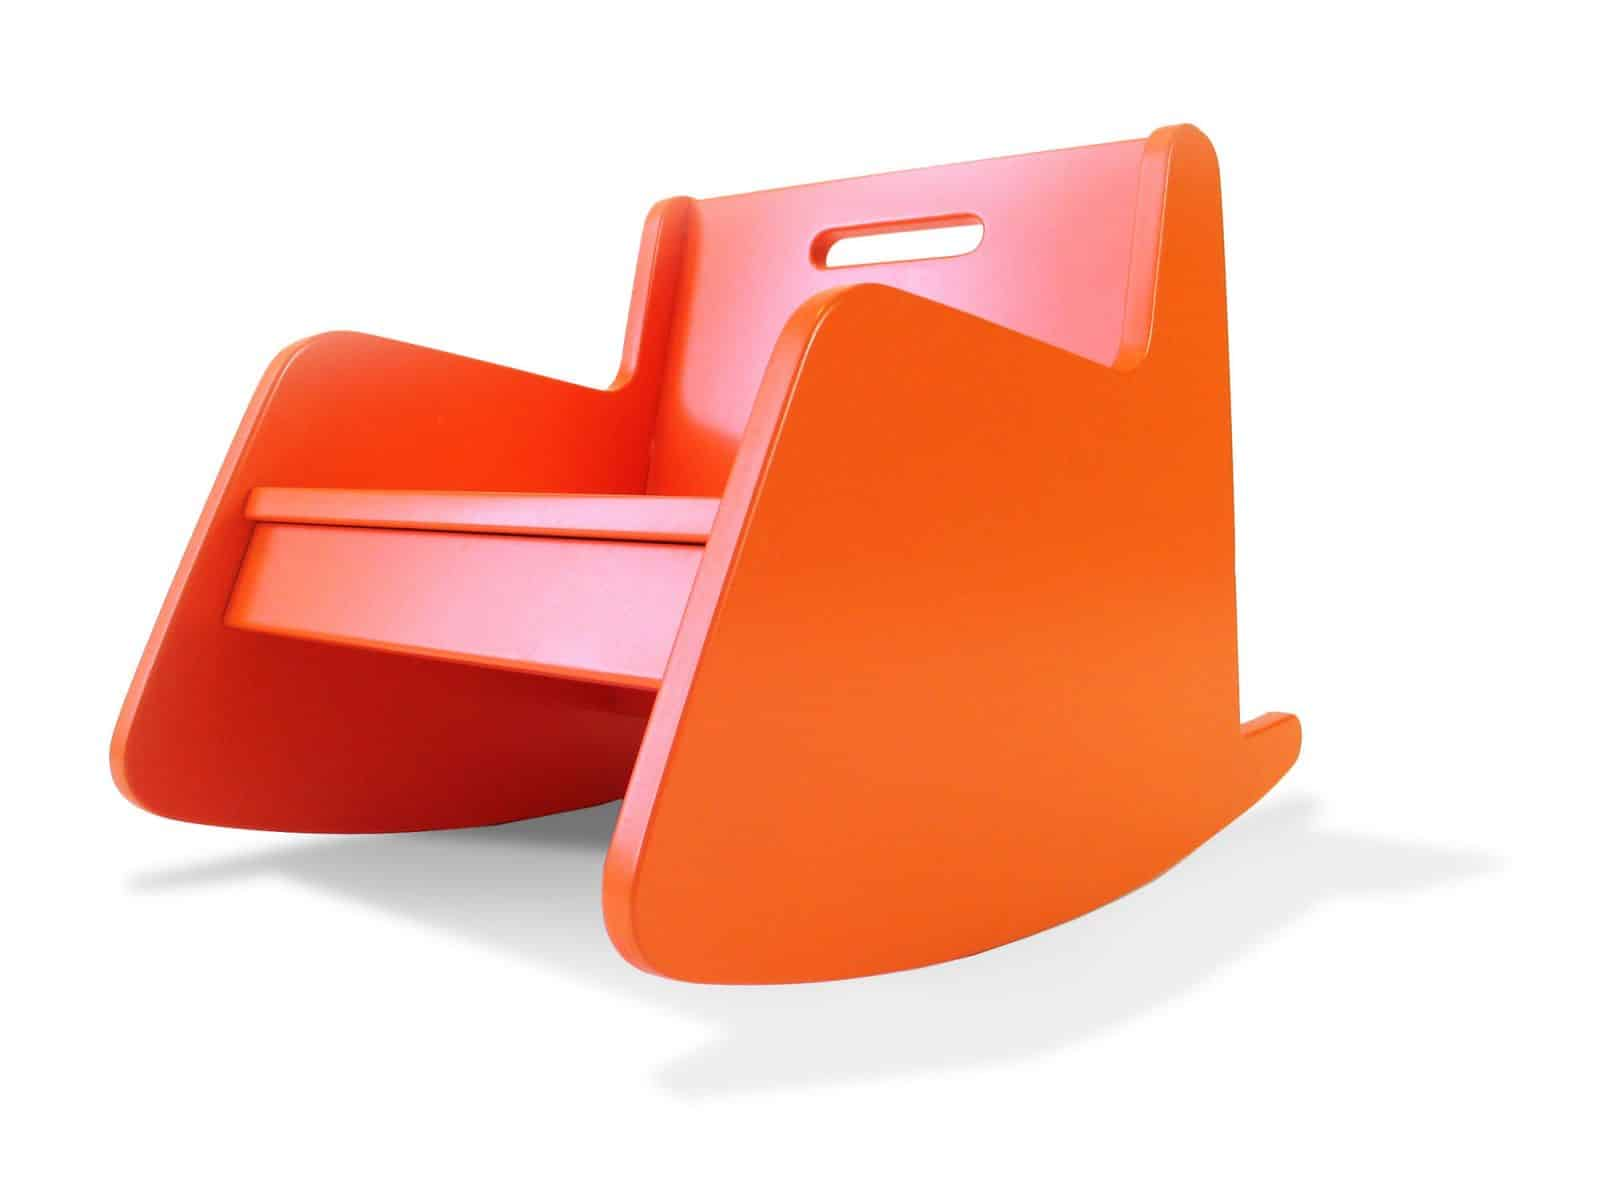 hello, wonderful - 15 orange home and style kids' accessories